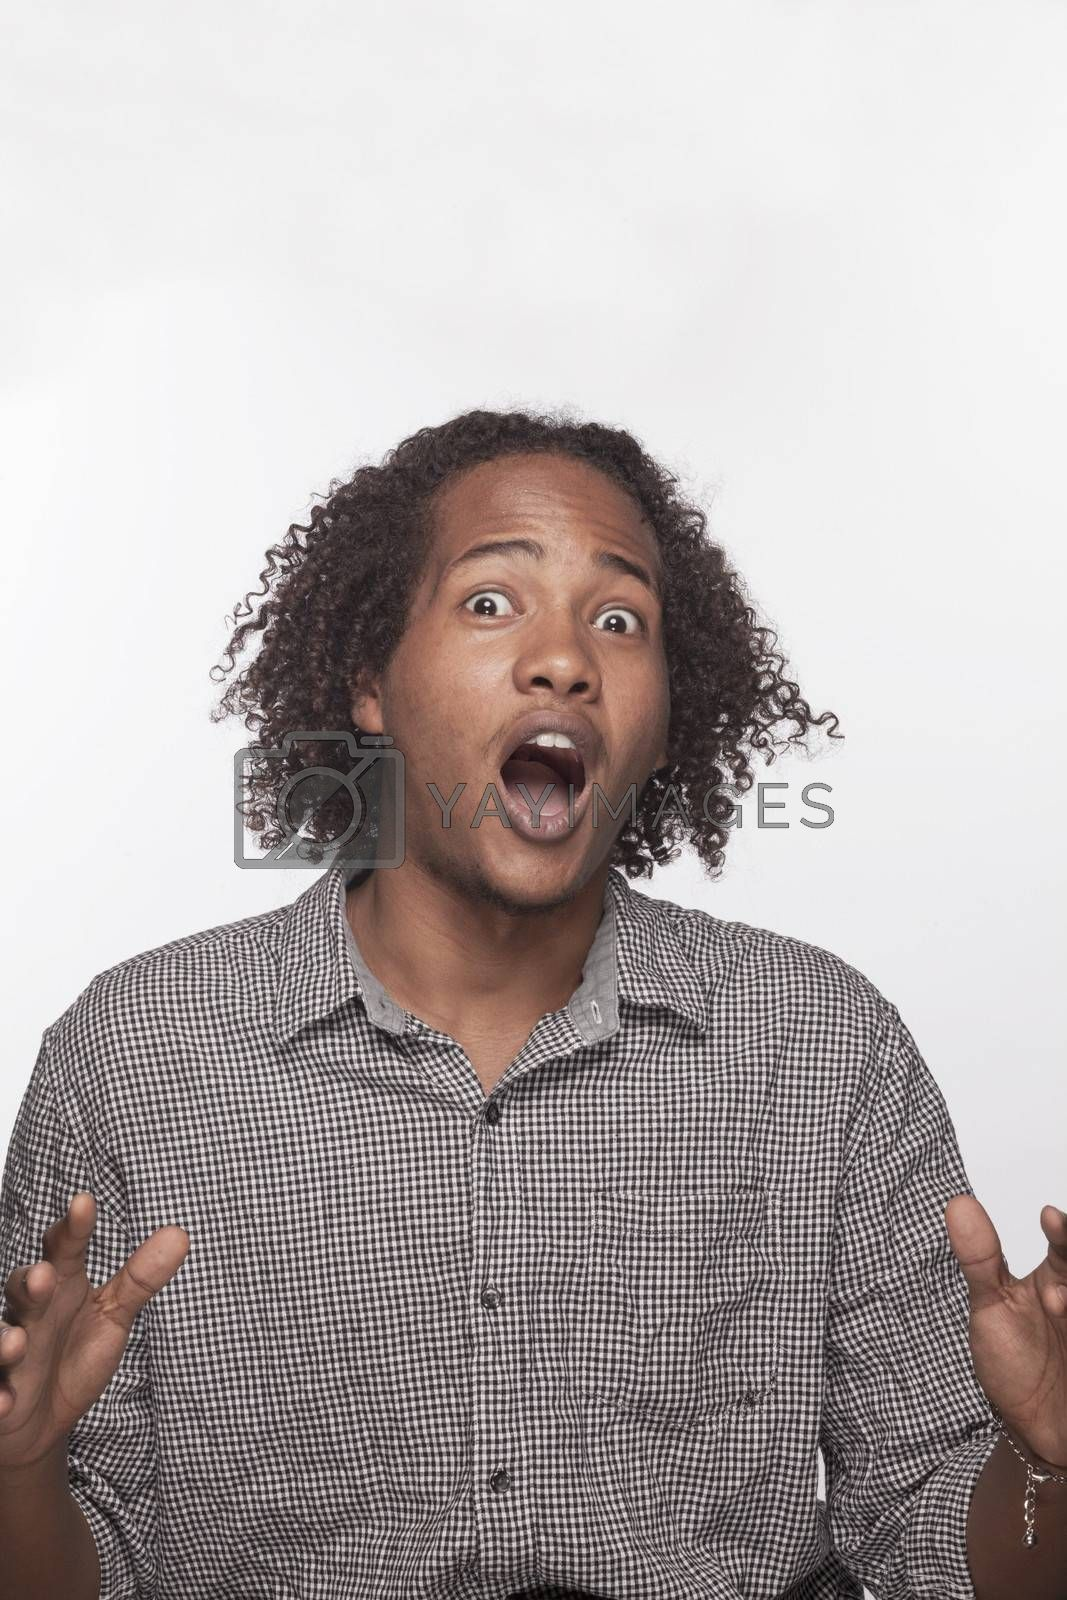 Portrait of shocked and surprised young man